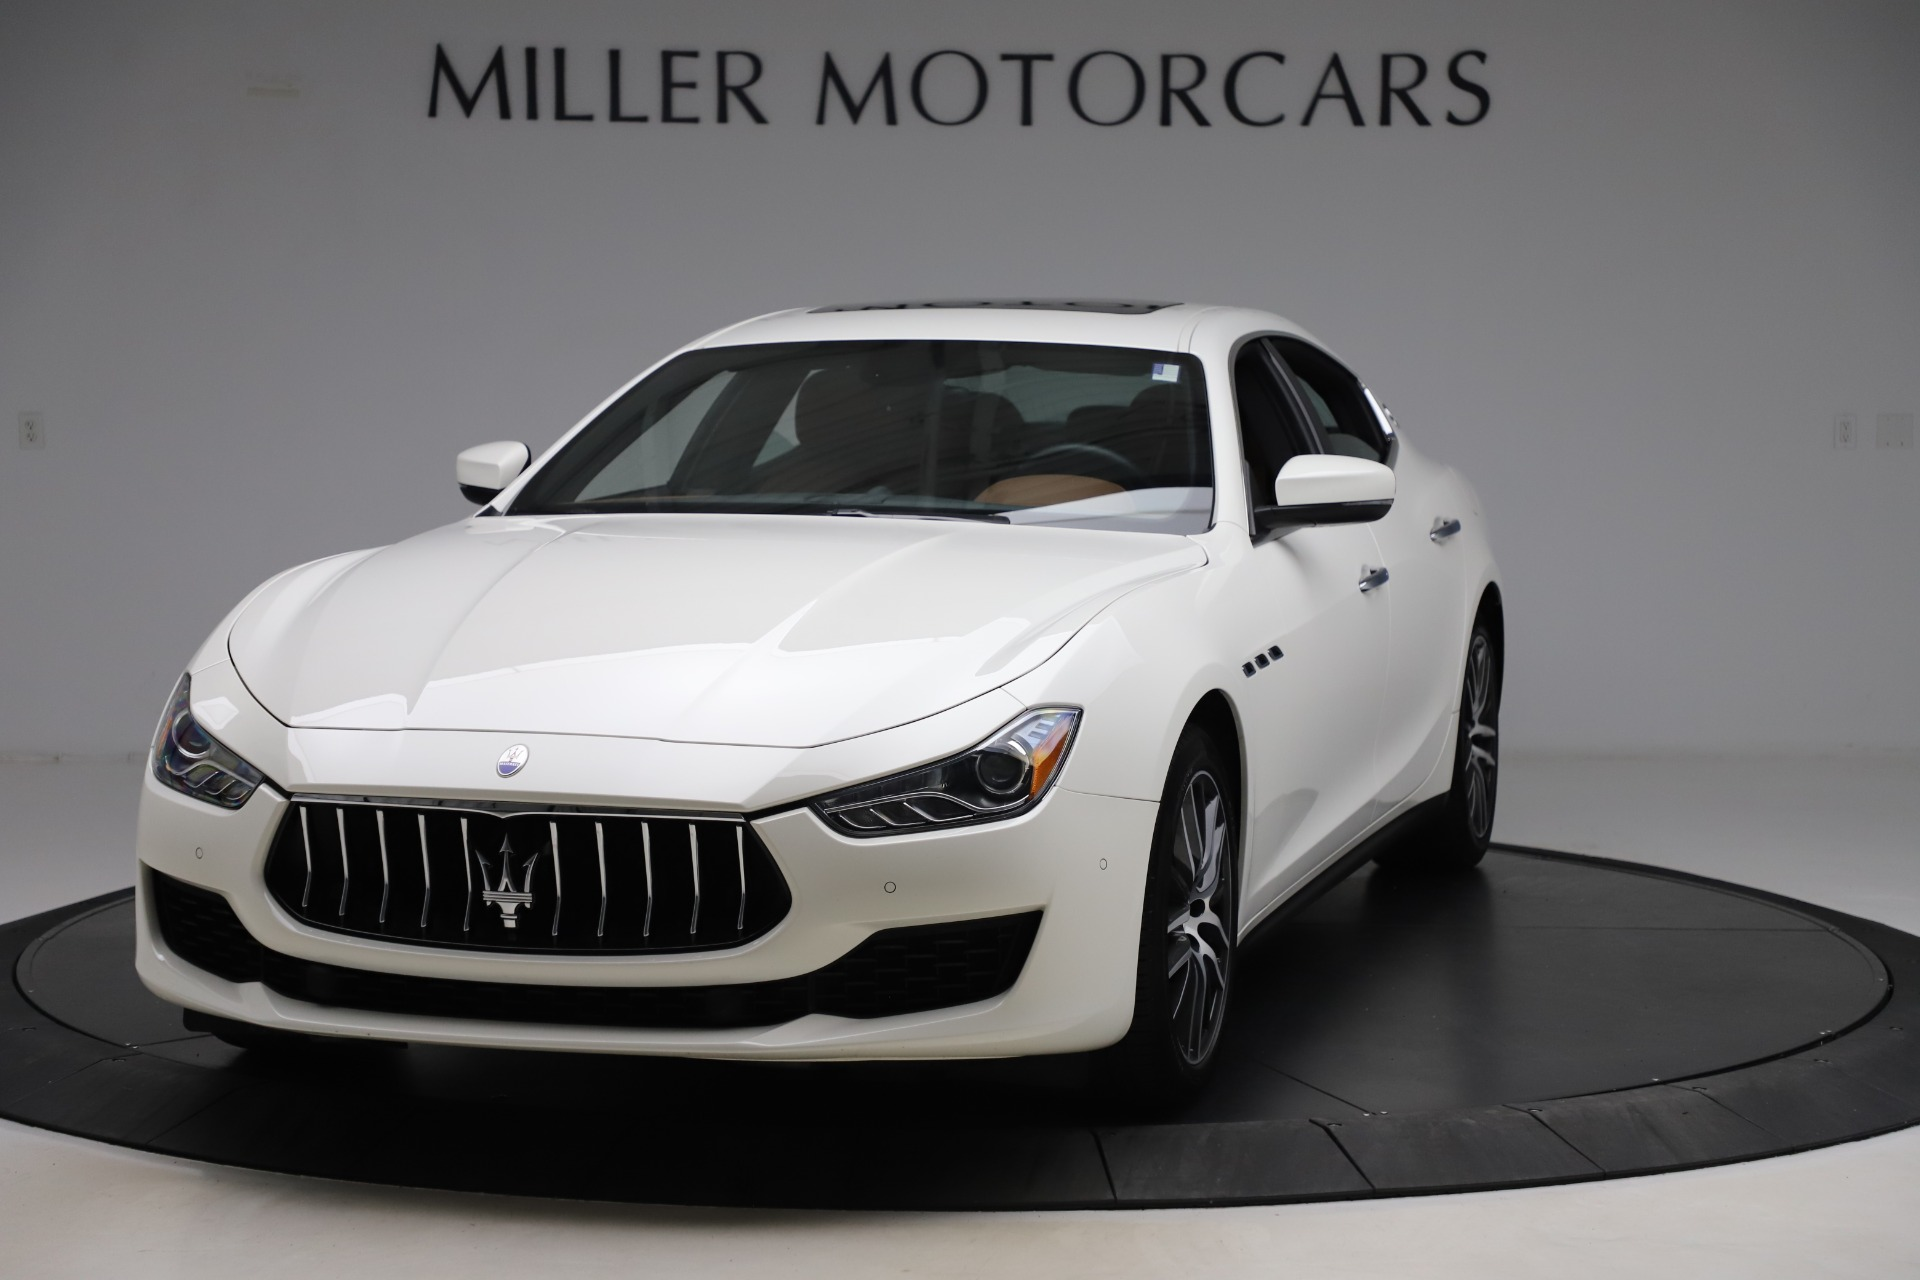 New 2019 Maserati Ghibli S Q4 for sale $91,630 at Rolls-Royce Motor Cars Greenwich in Greenwich CT 06830 1